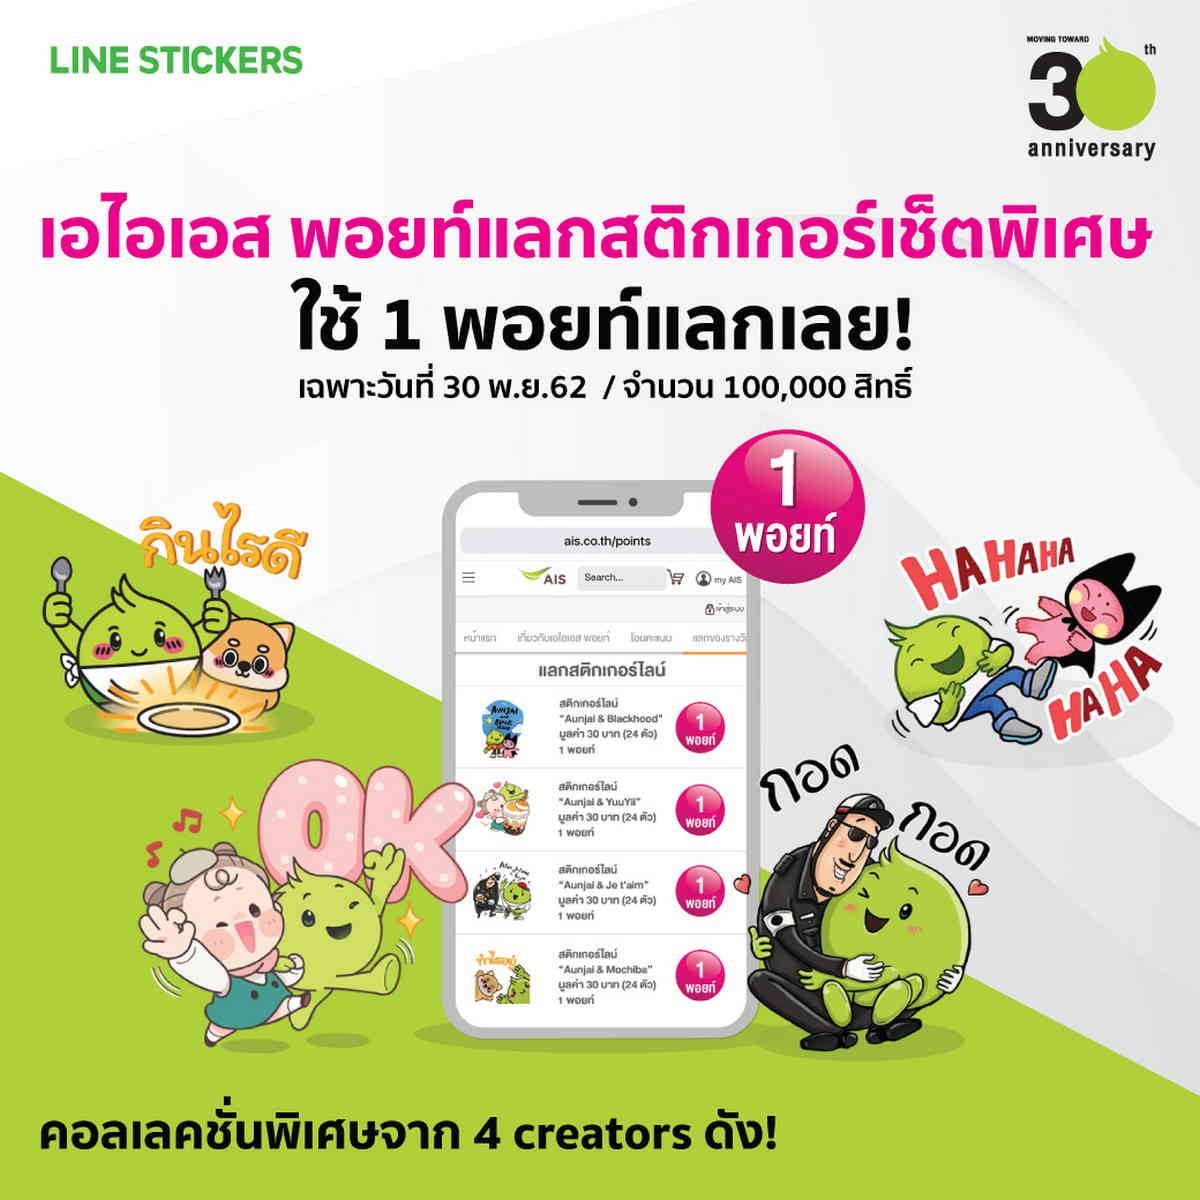 AIS Points and Line sticker